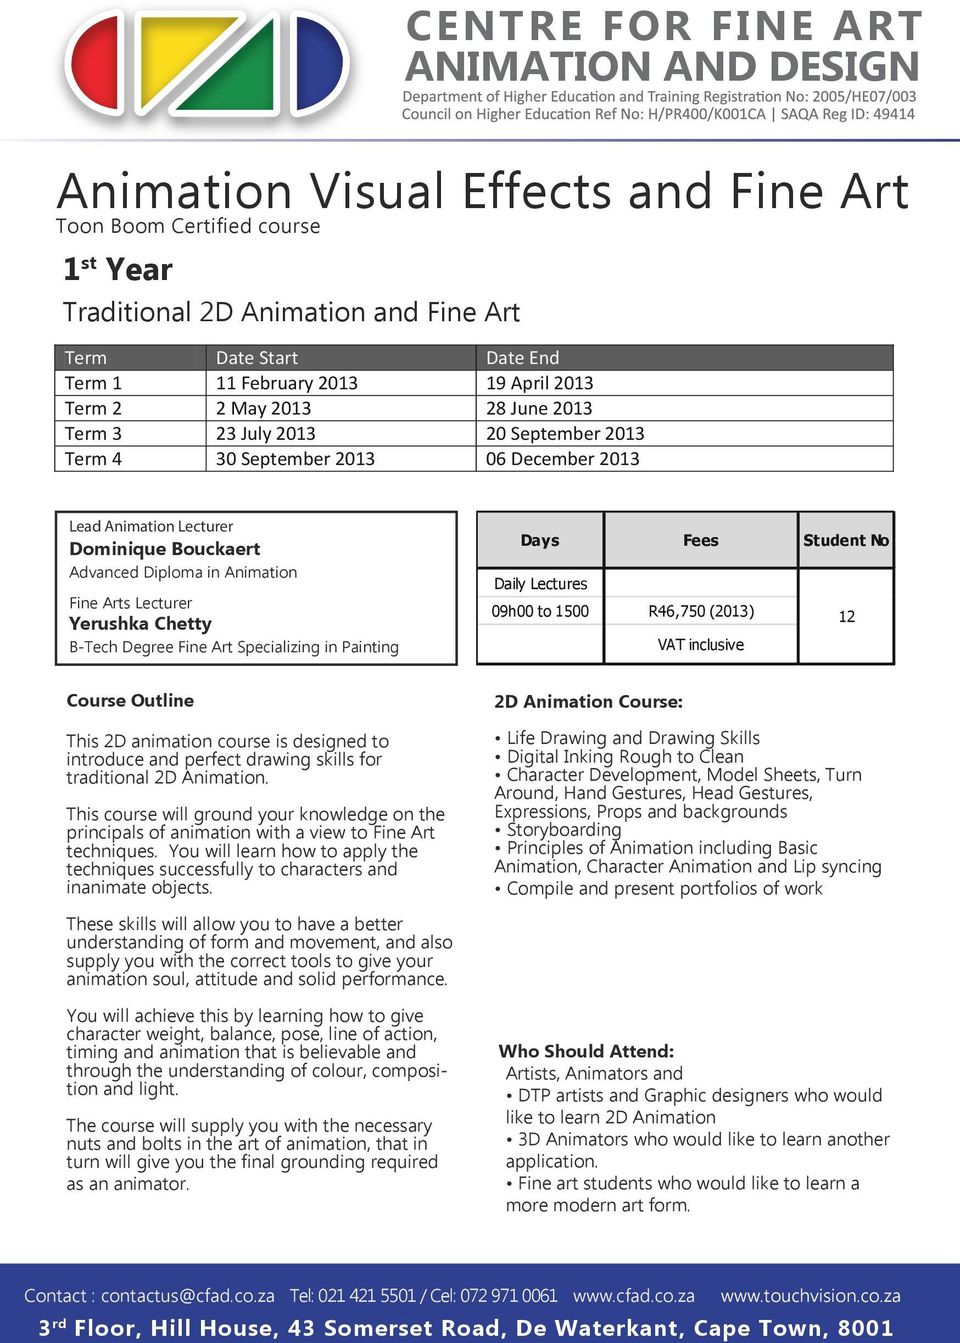 Centre For Fine Art Animation And Design Animation Visual